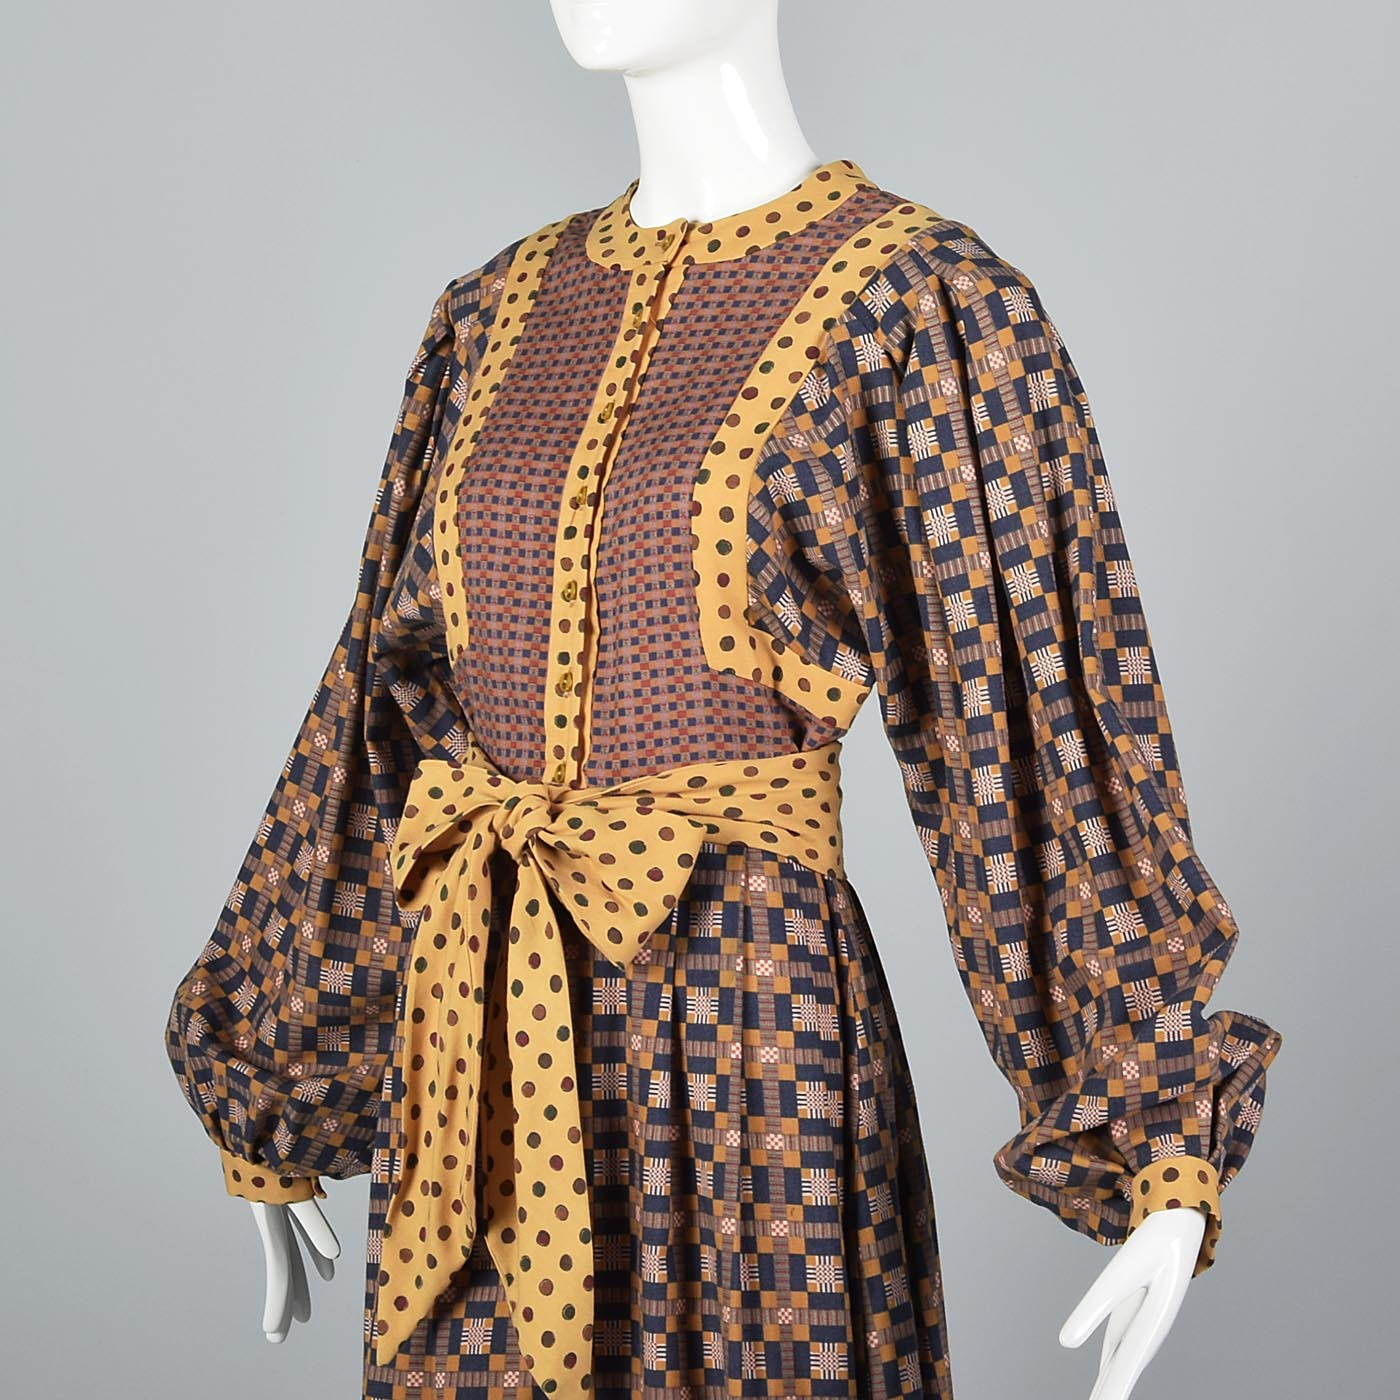 1960s Mary Quant Ginger Bohemian Wool Dress with Bishop Sleeves